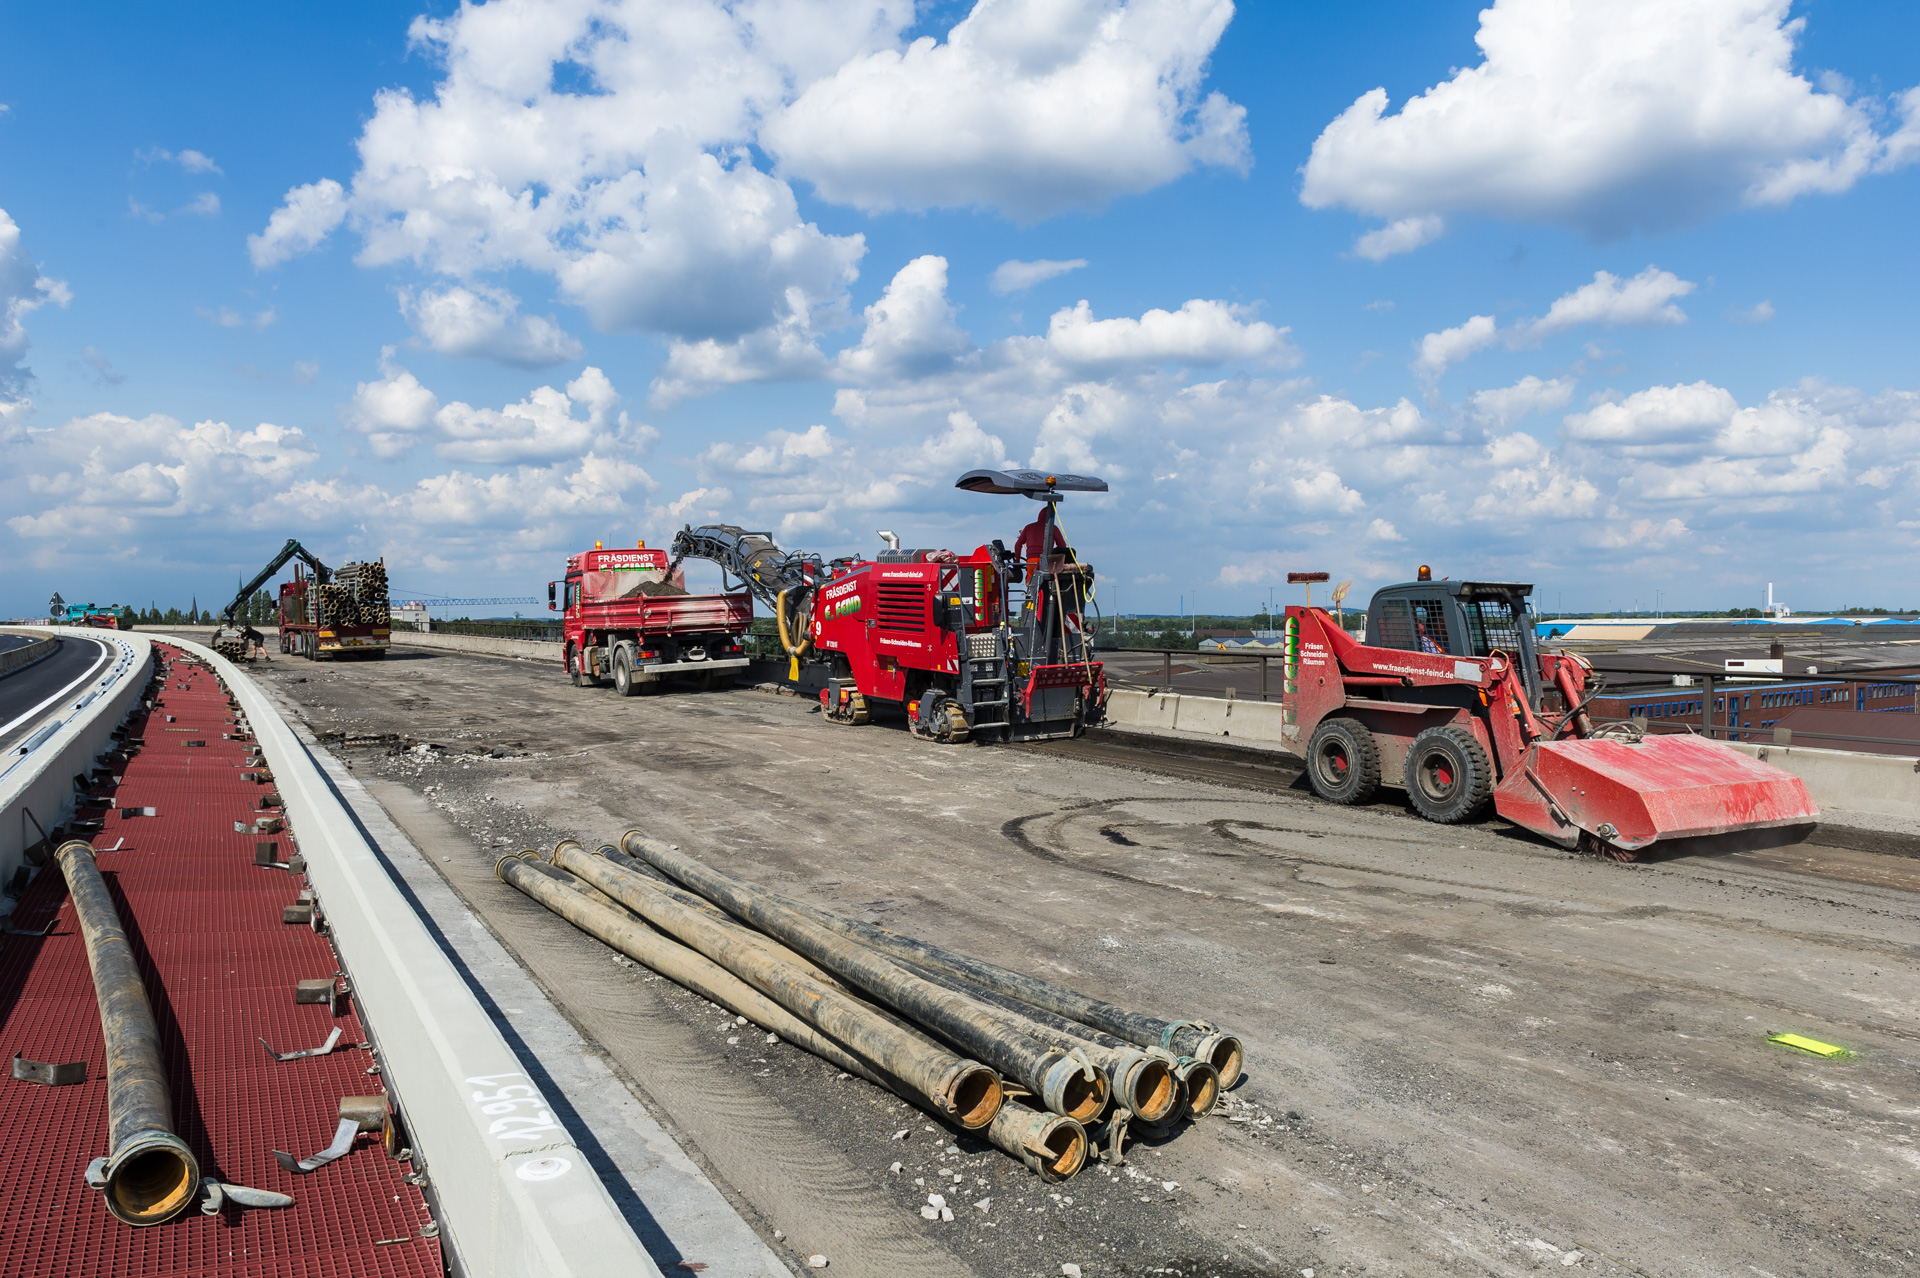 Duisburg bridge renovation with red construction machinery A59 motorway